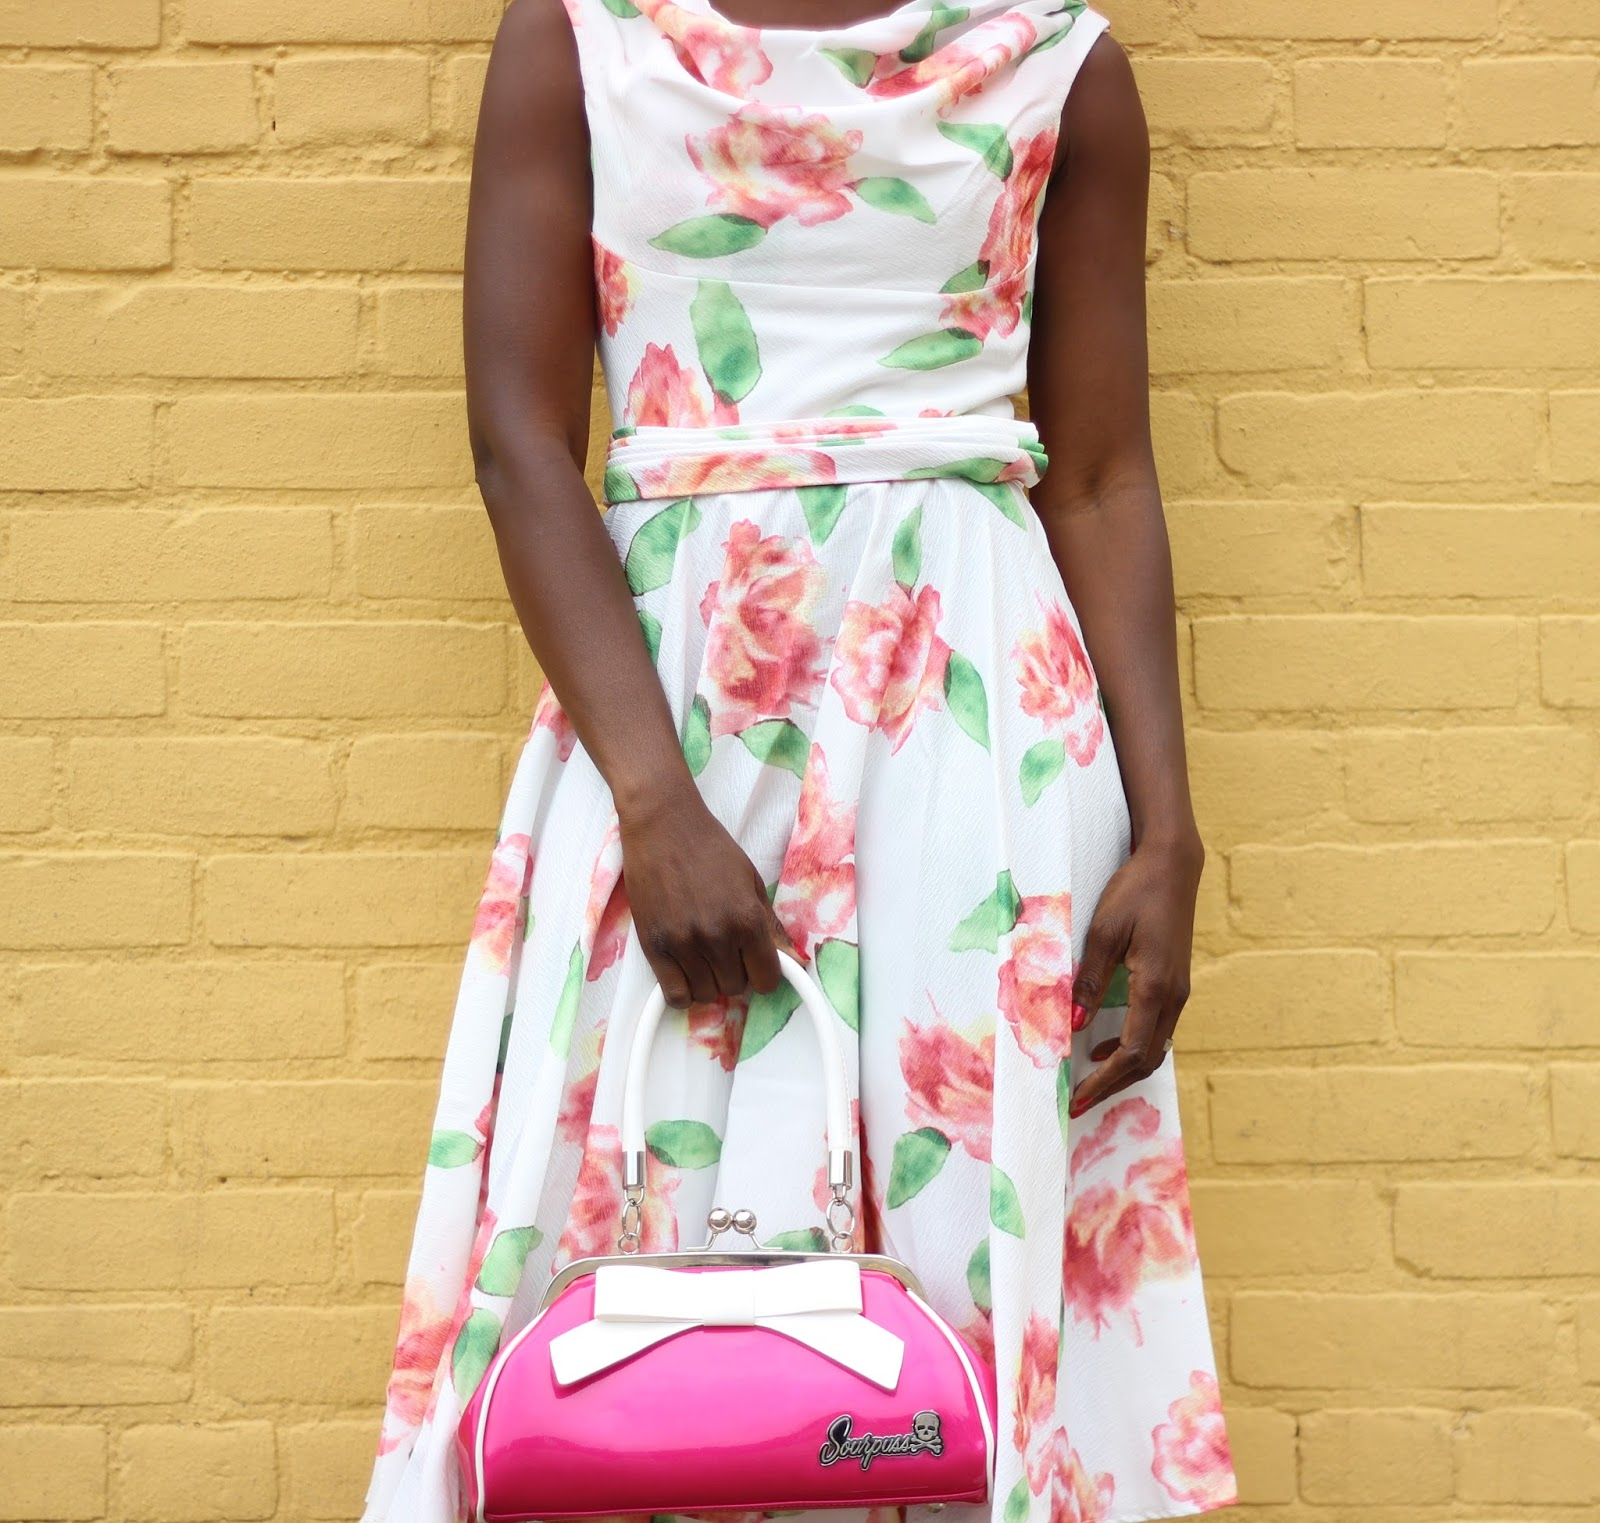 Iconic Pink and Floral Scoop Neck Belted Swing Dress, Retro Style Raspberry Pink Floozy Kiss Lock Purse, Black and Pink Peep Toe Ruffle Liberia Heels by Unique Vintage